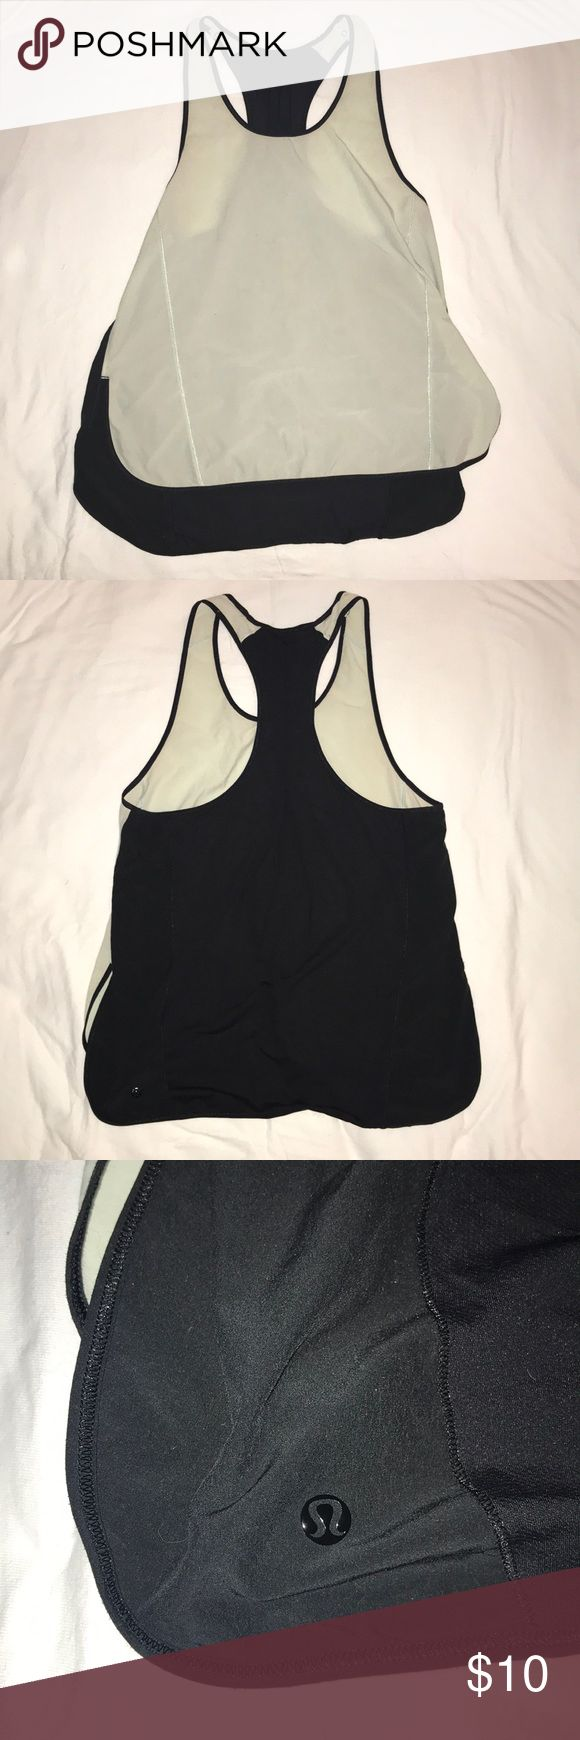 Lululemon Workout Top - Sz 8 Cute lose fitting Lululemon Workout Top in mint and black is a Workout staple. It even has snaps to clip in your sports bra for comfort!   READ: Shows signs of wear (see pics). Small stain on the front, and some pulling on the front side.   Price reflects wear. lululemon athletica Tops